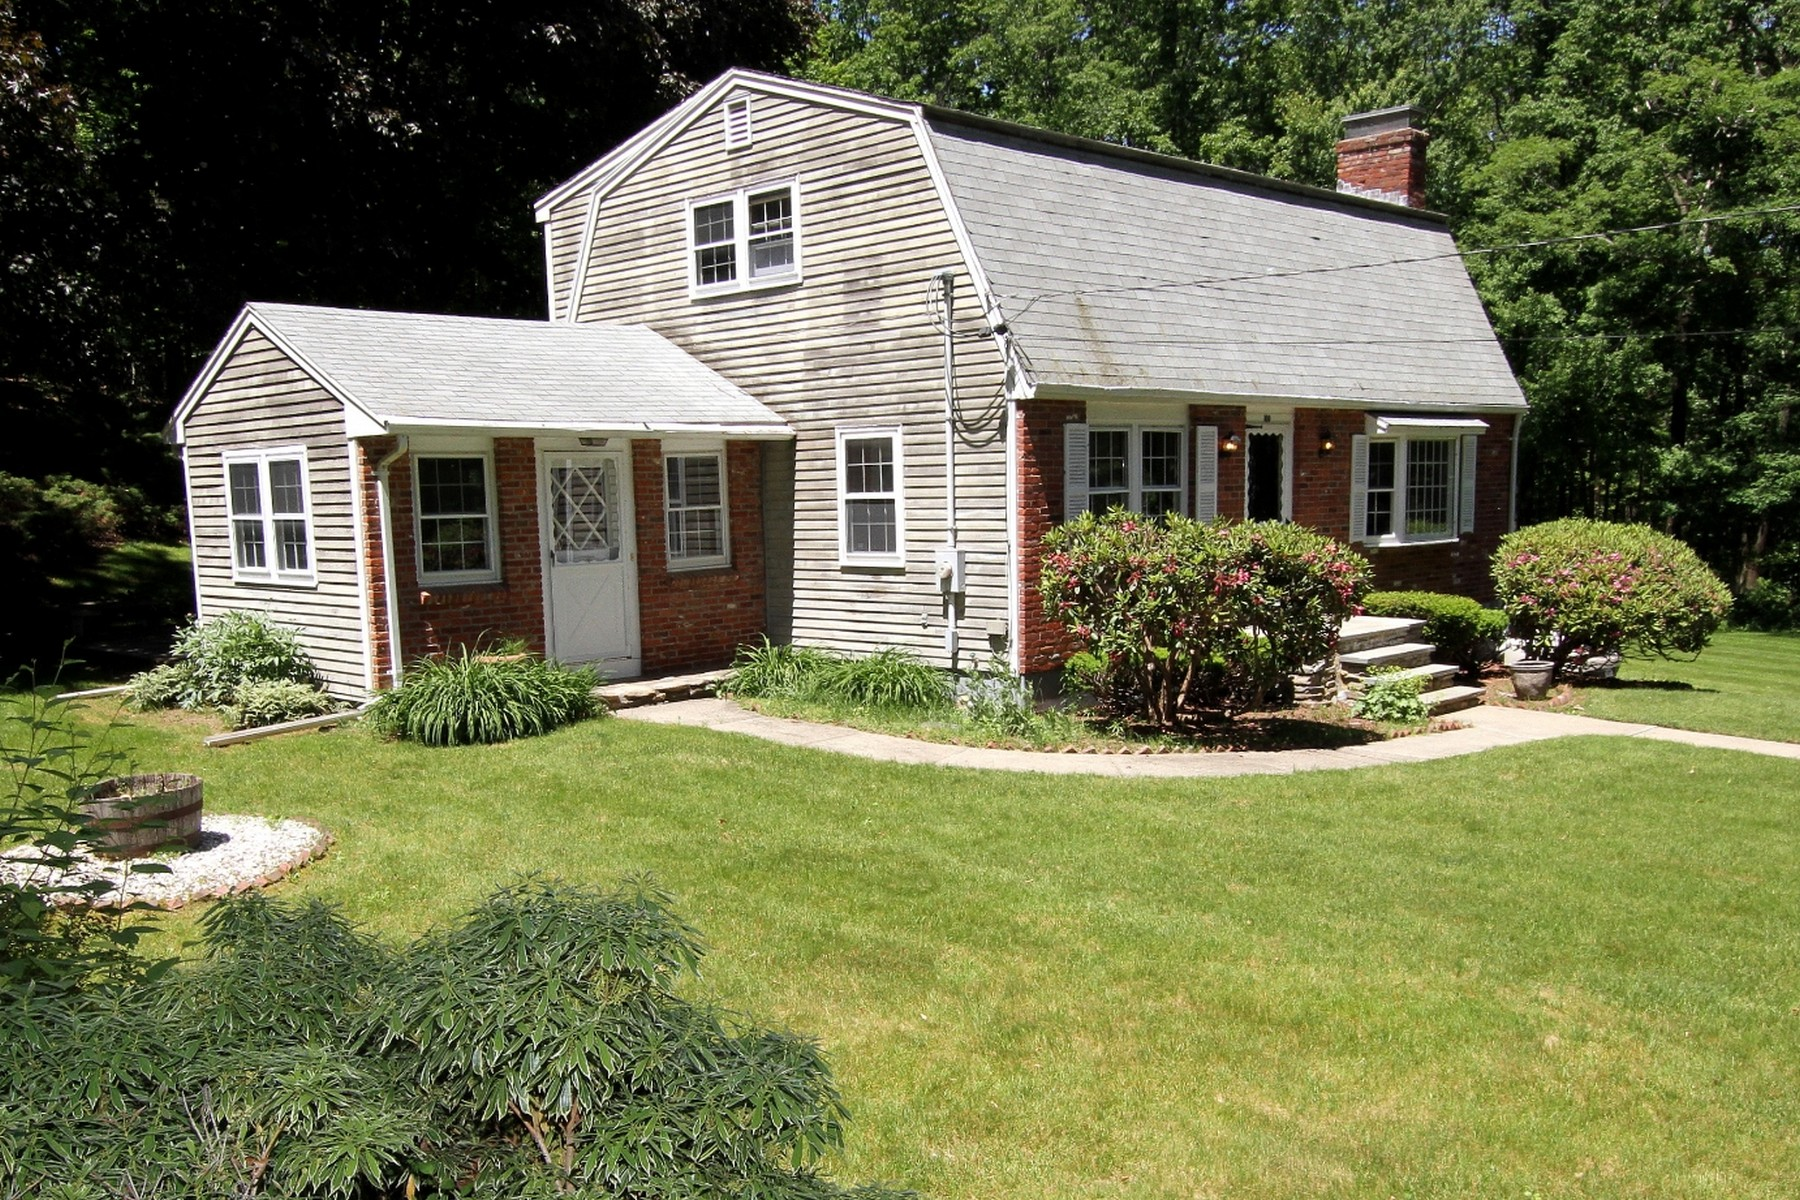 Single Family Homes for Active at Beautiful Property In Upton 100 Ridge Road Upton, Massachusetts 01568 United States